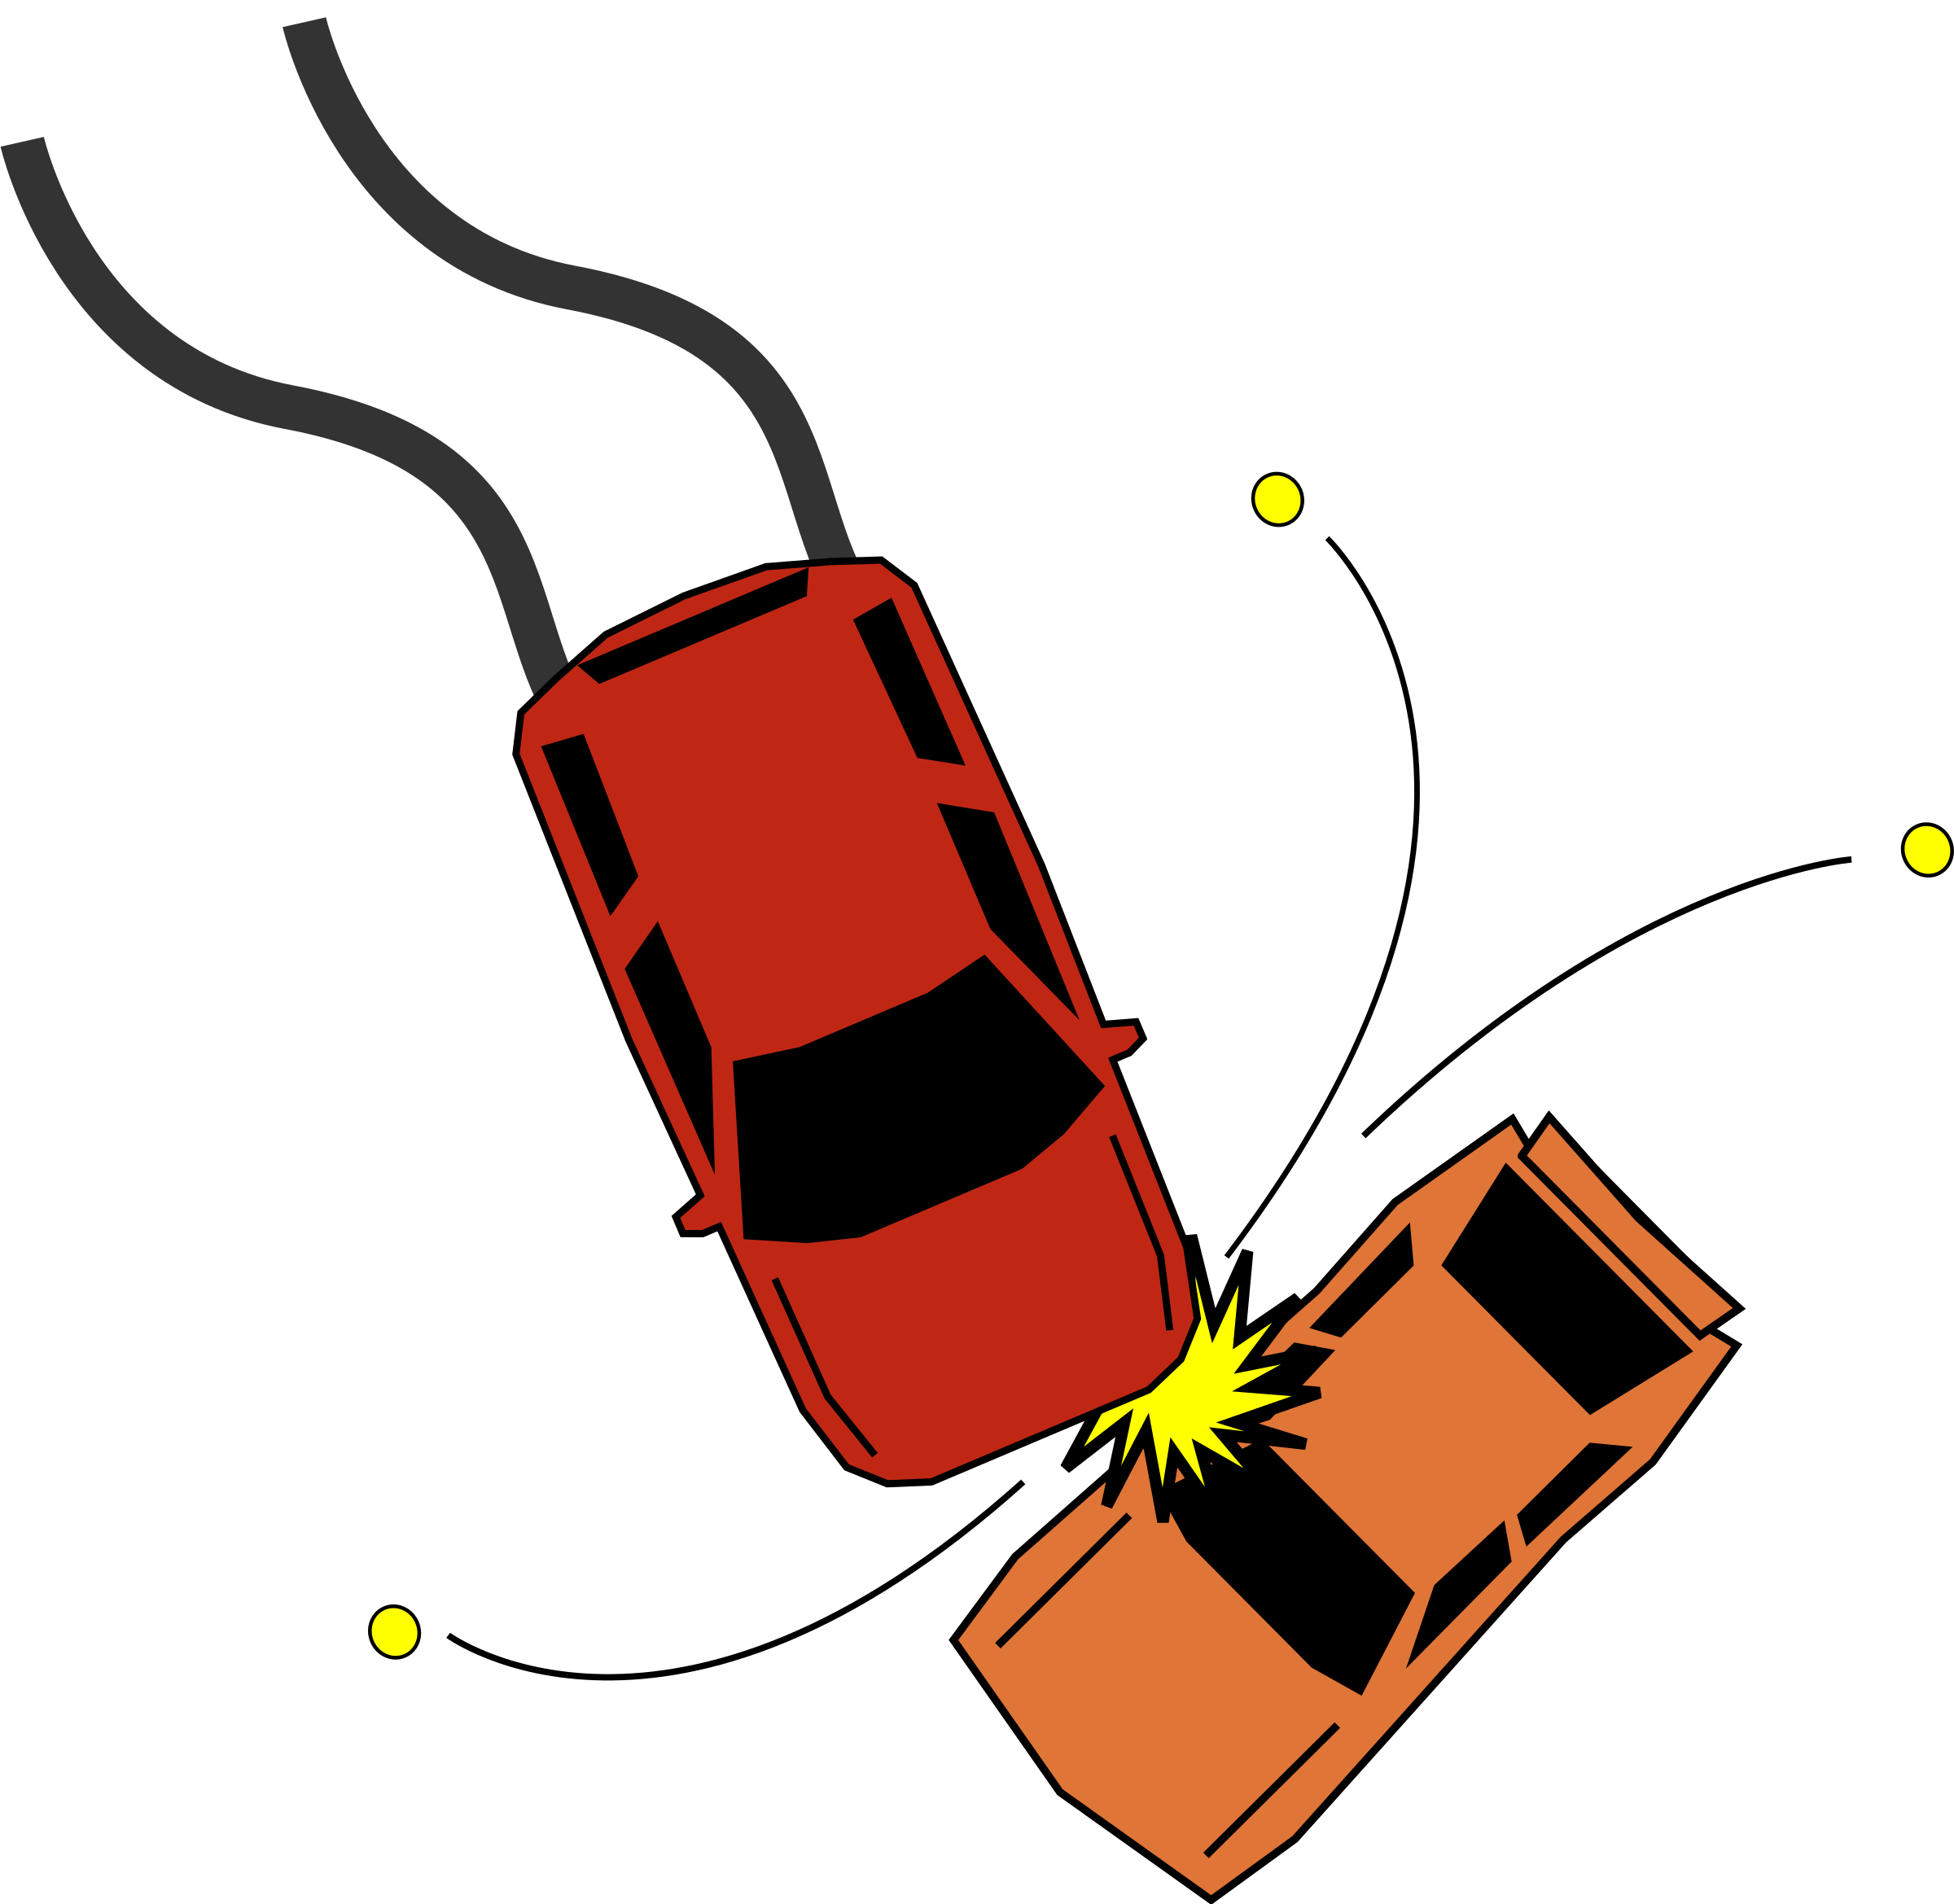 Car on a road clipart png download Clipart - Car Accident png download